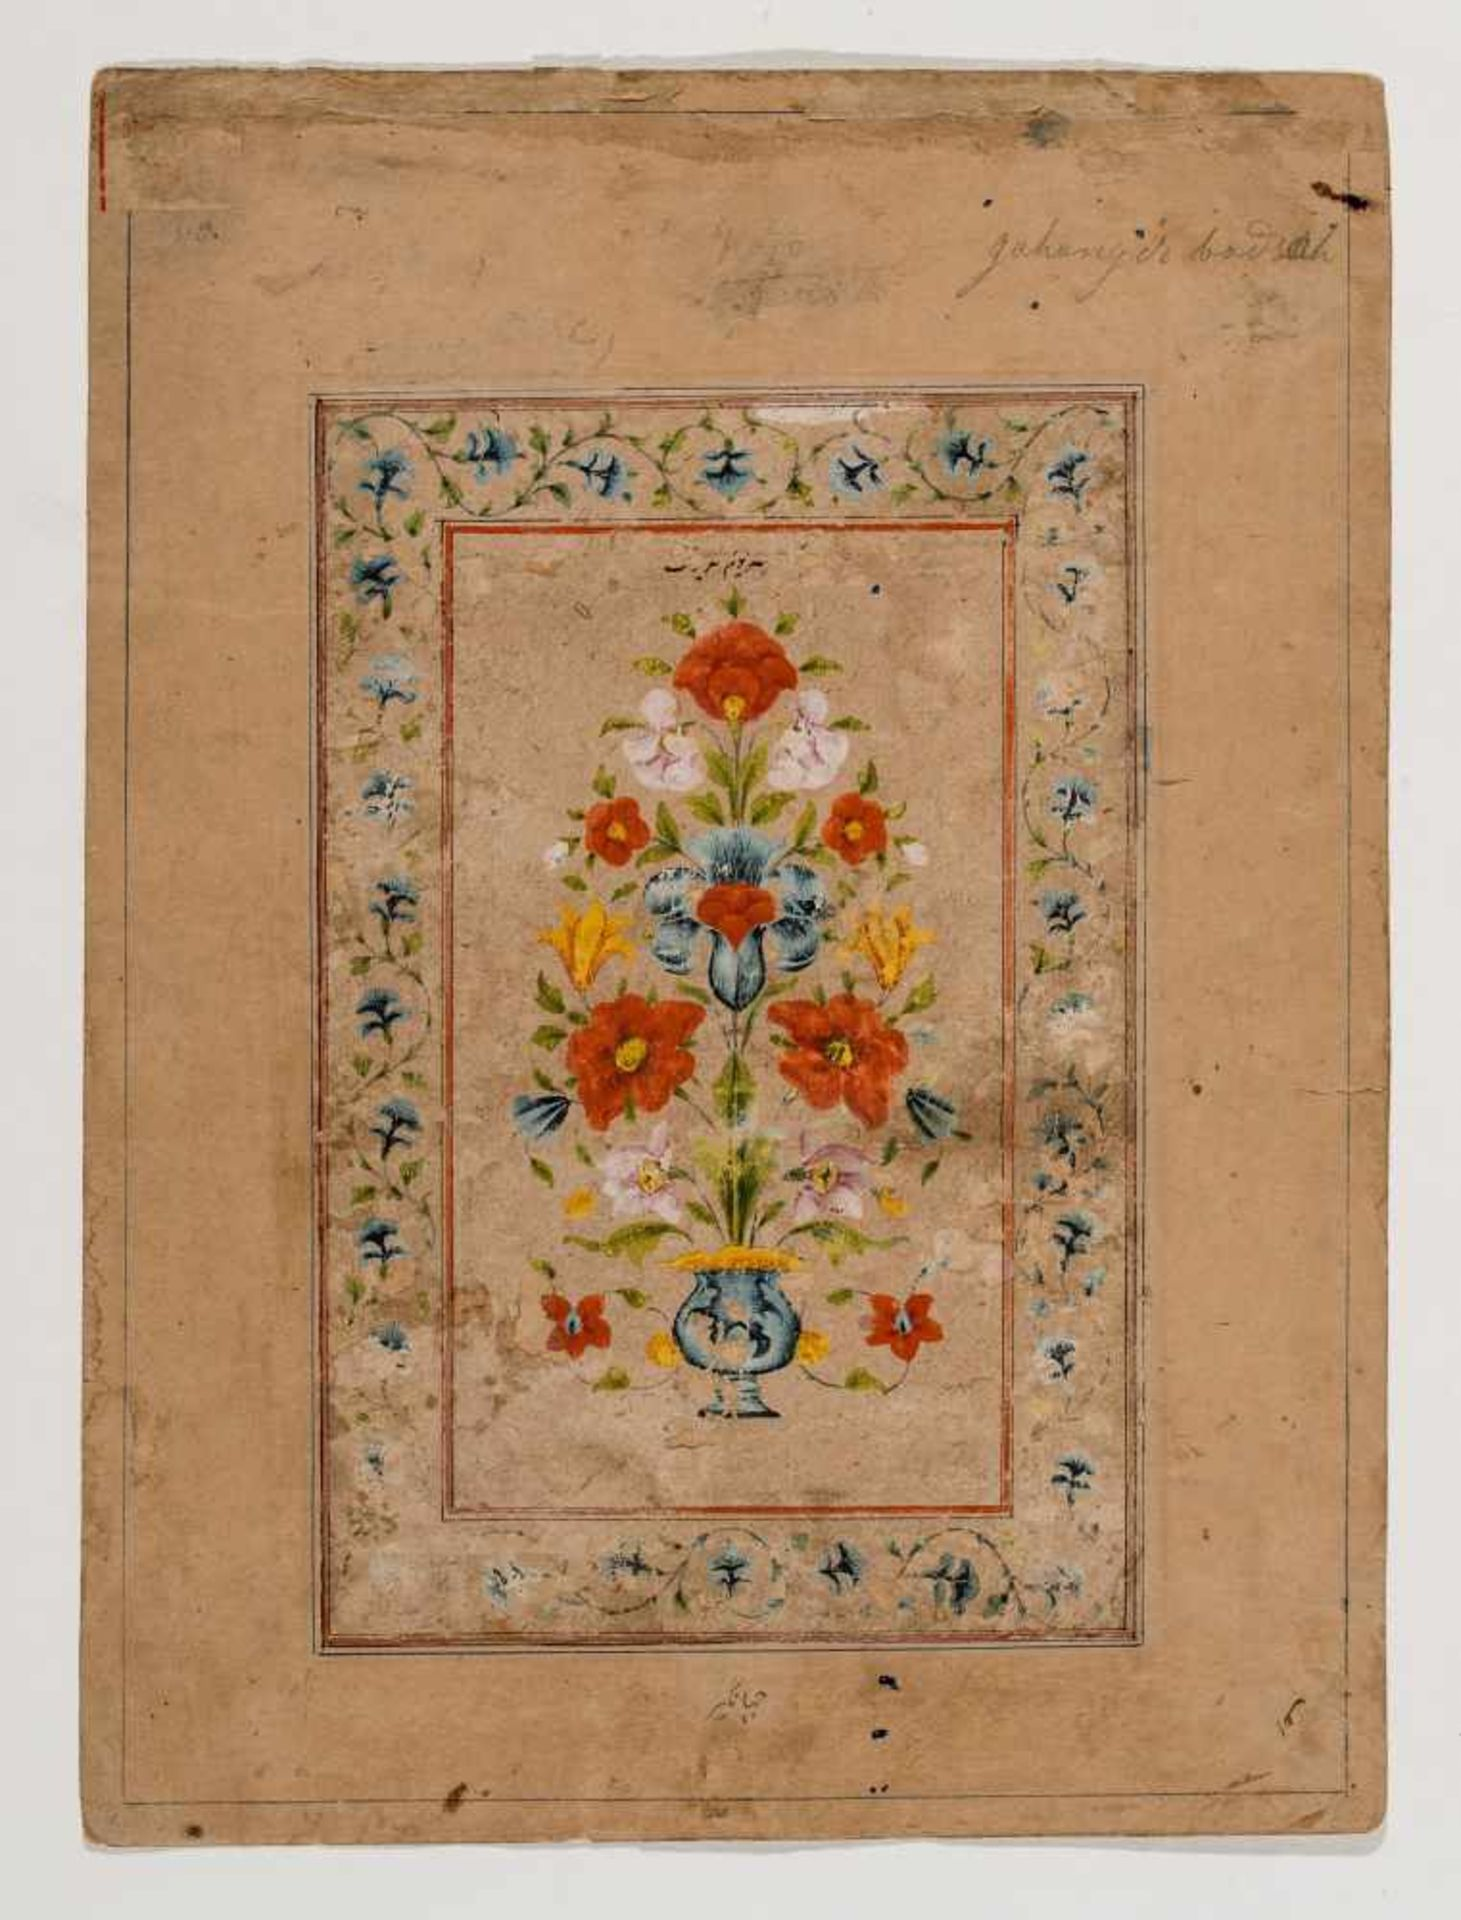 AN INDO-MUGHAL PAGE - INDIA, 18TH CENTURYPainting with colors on paperIndia, 18th centuryDepicting a